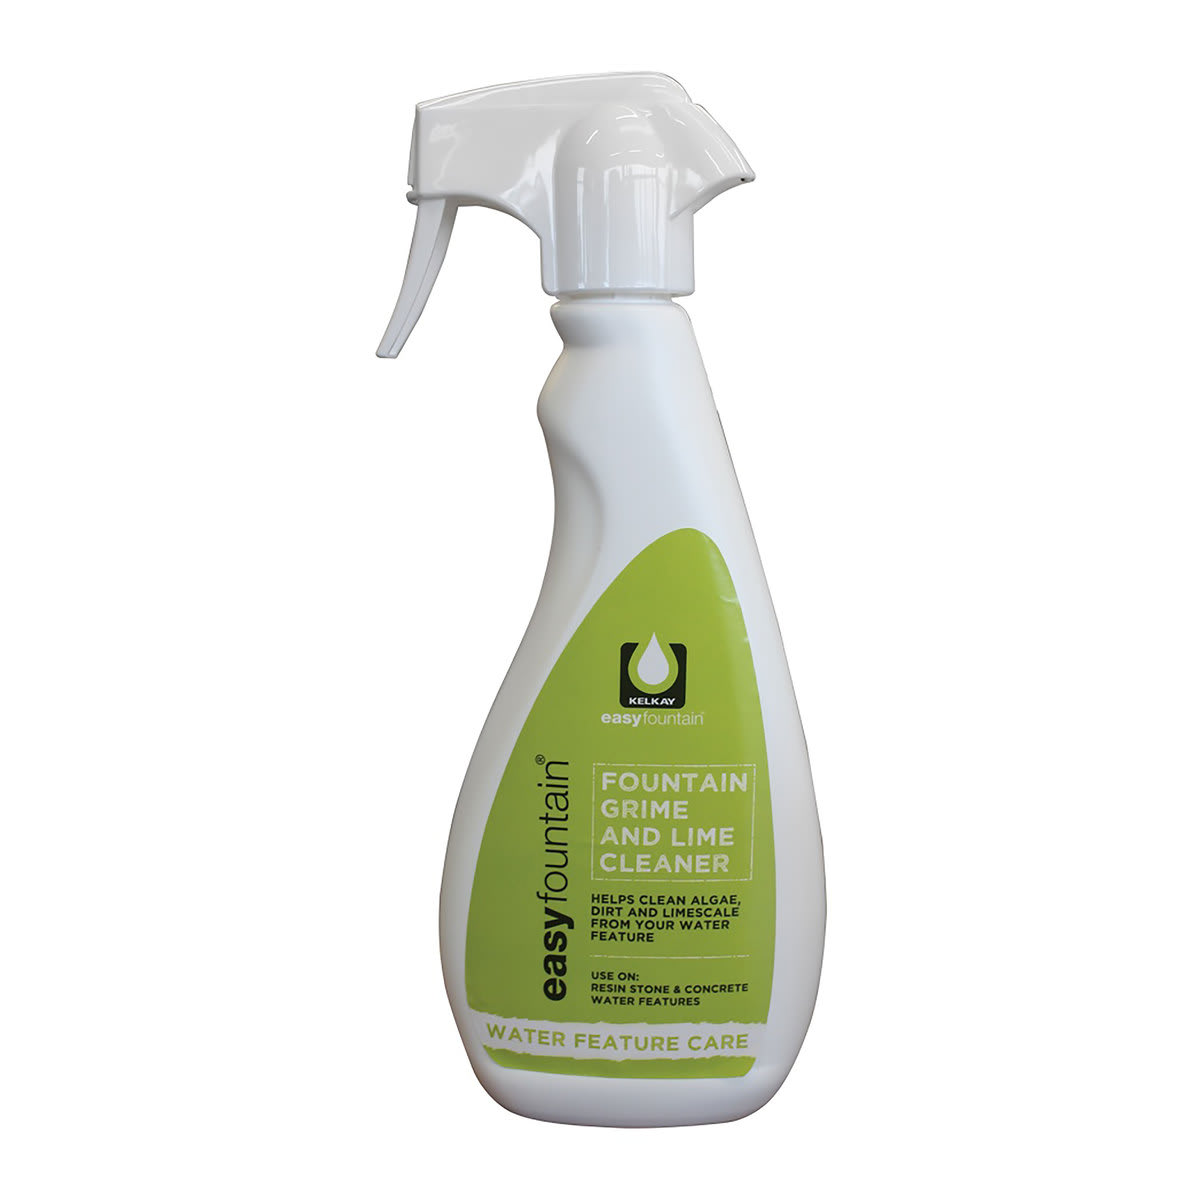 Fountain Grime & Lime Cleaner